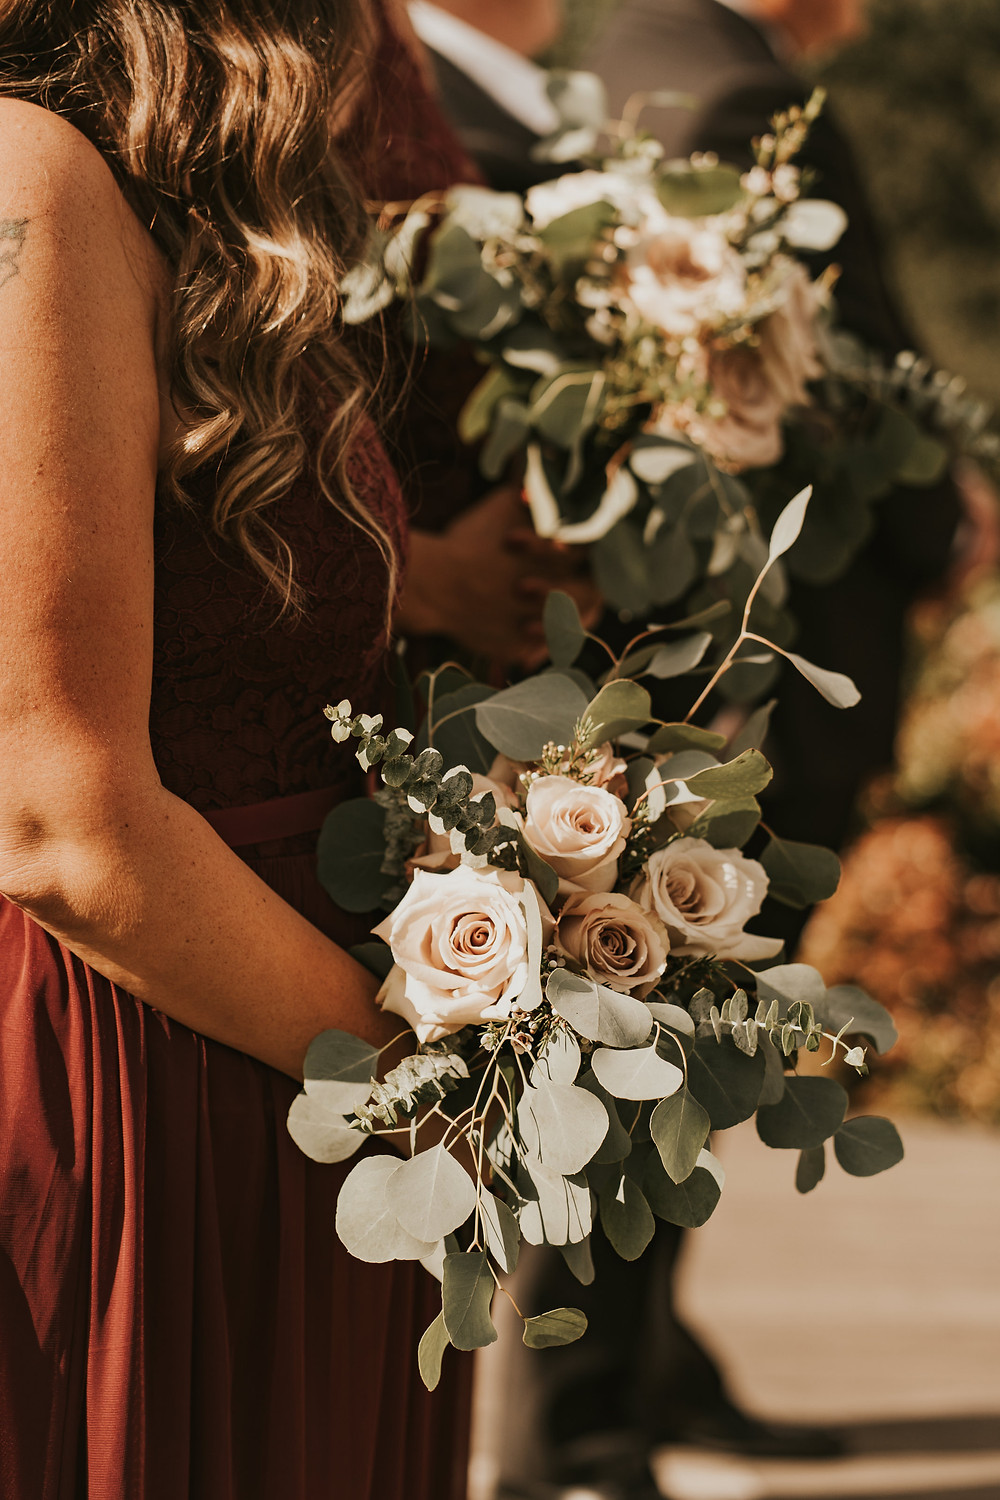 bridesmaid holding a bouquet at the wedding ceremony